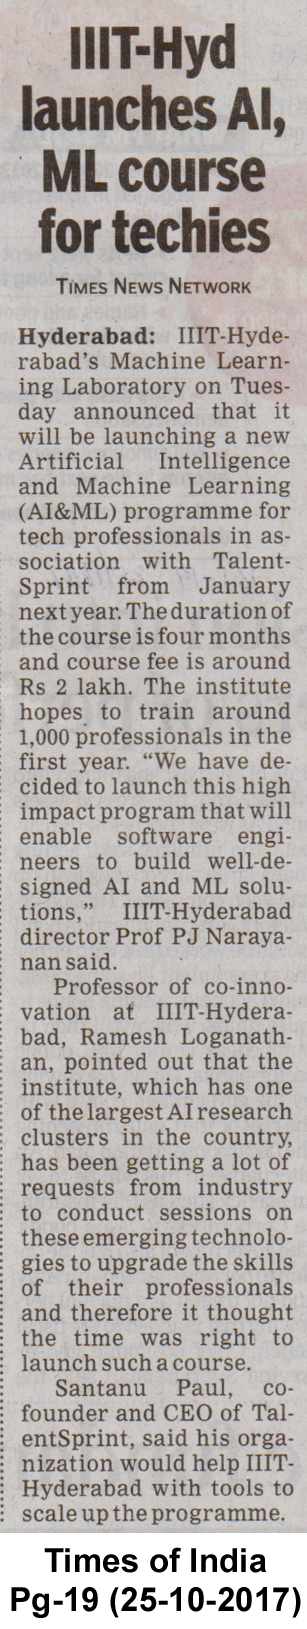 IIIT-Hyderabad launches AI programme